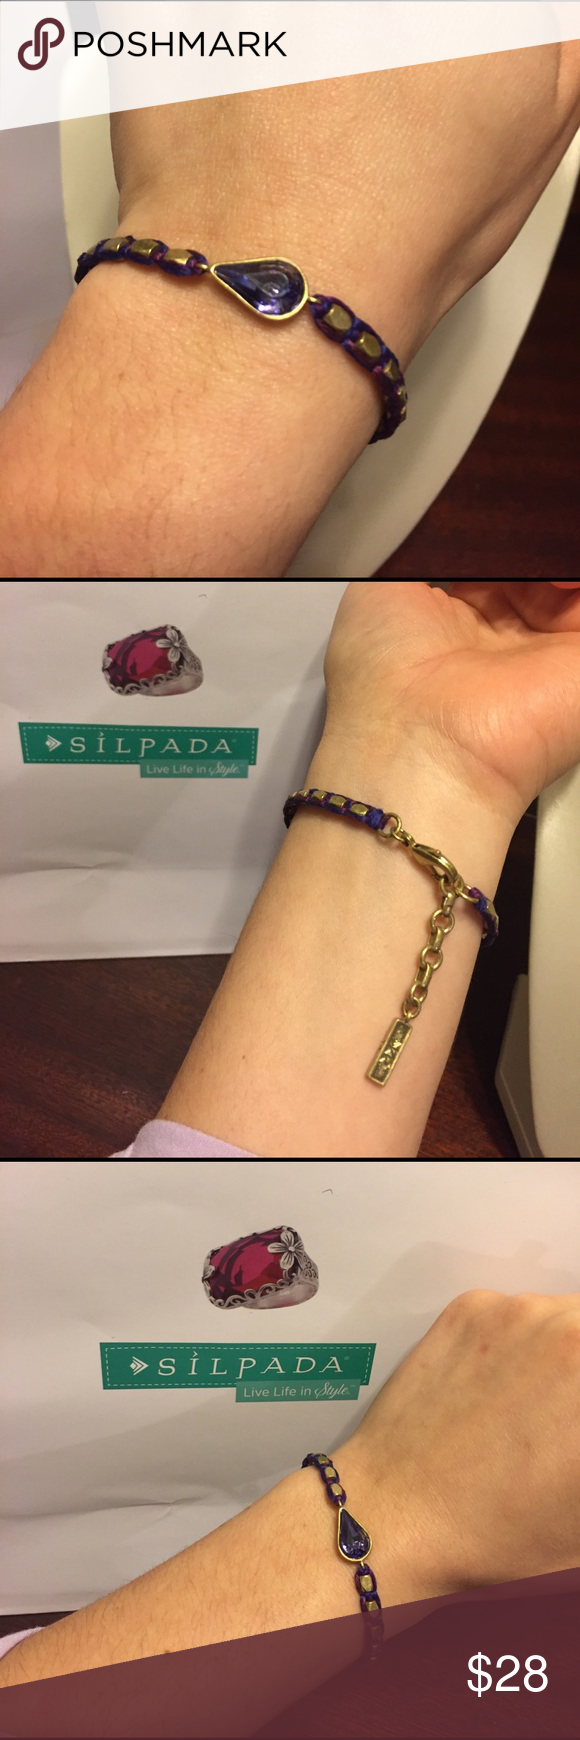 Silpada bracelet Beautiful purple and brass coloring with purple cord details surrounding, this is has an extender so it should fit quite a variety of wrist sizes. Silpada Jewelry Bracelets